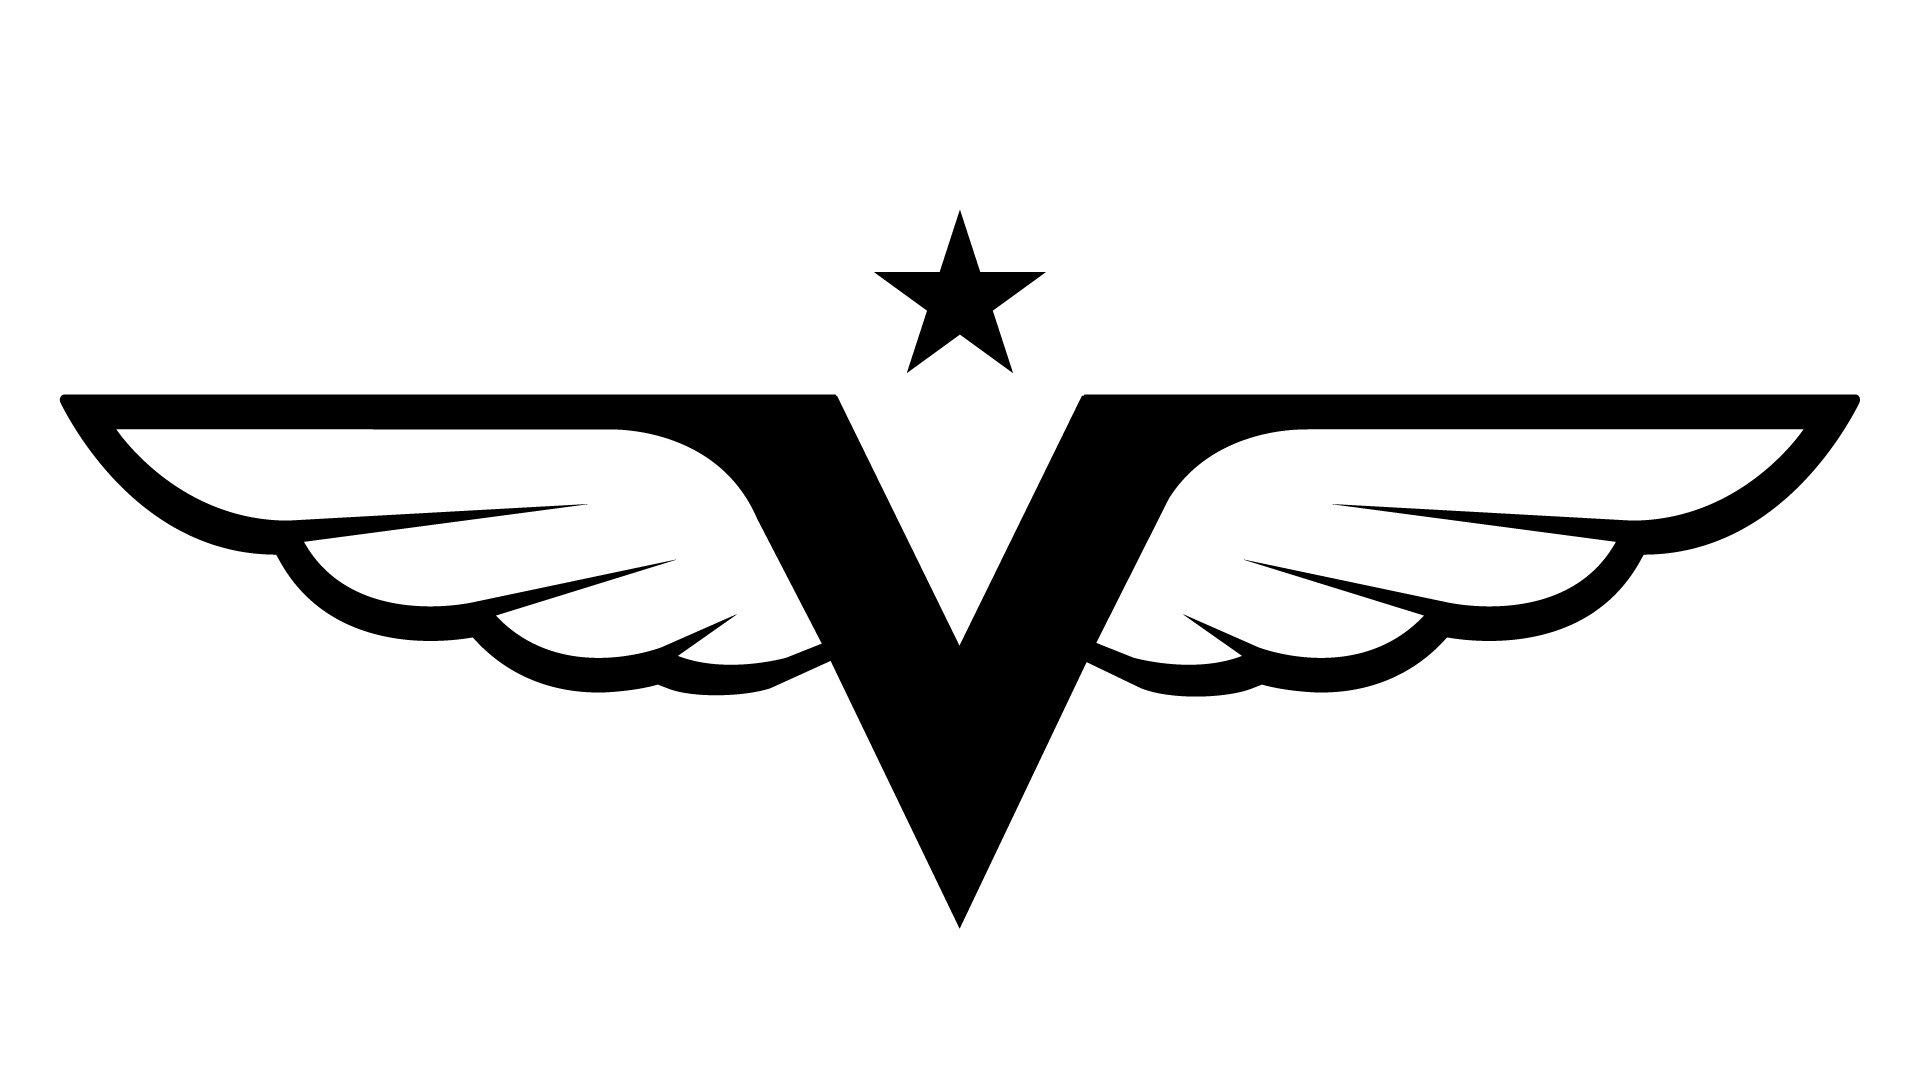 vessel_logo_simple-web-01.png